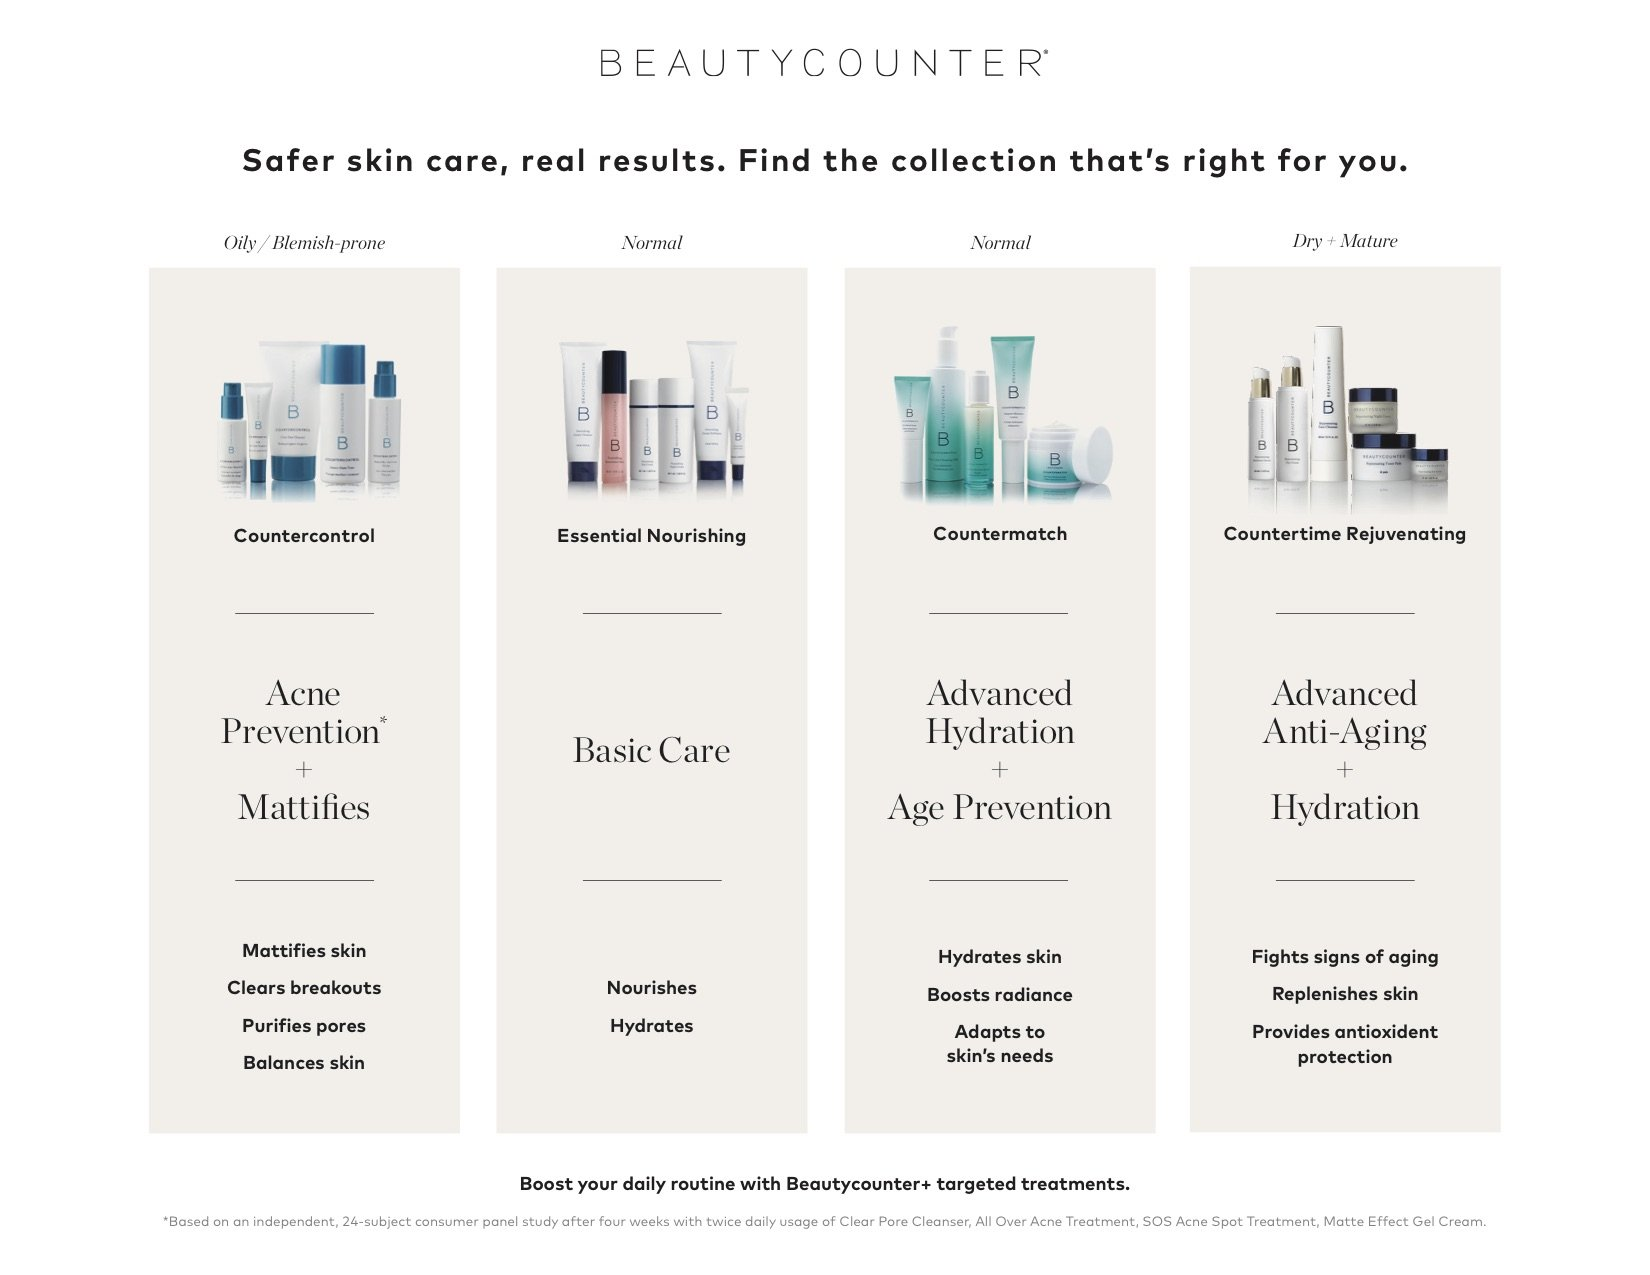 Choose Beautycounter's skincare collection that's right for you.